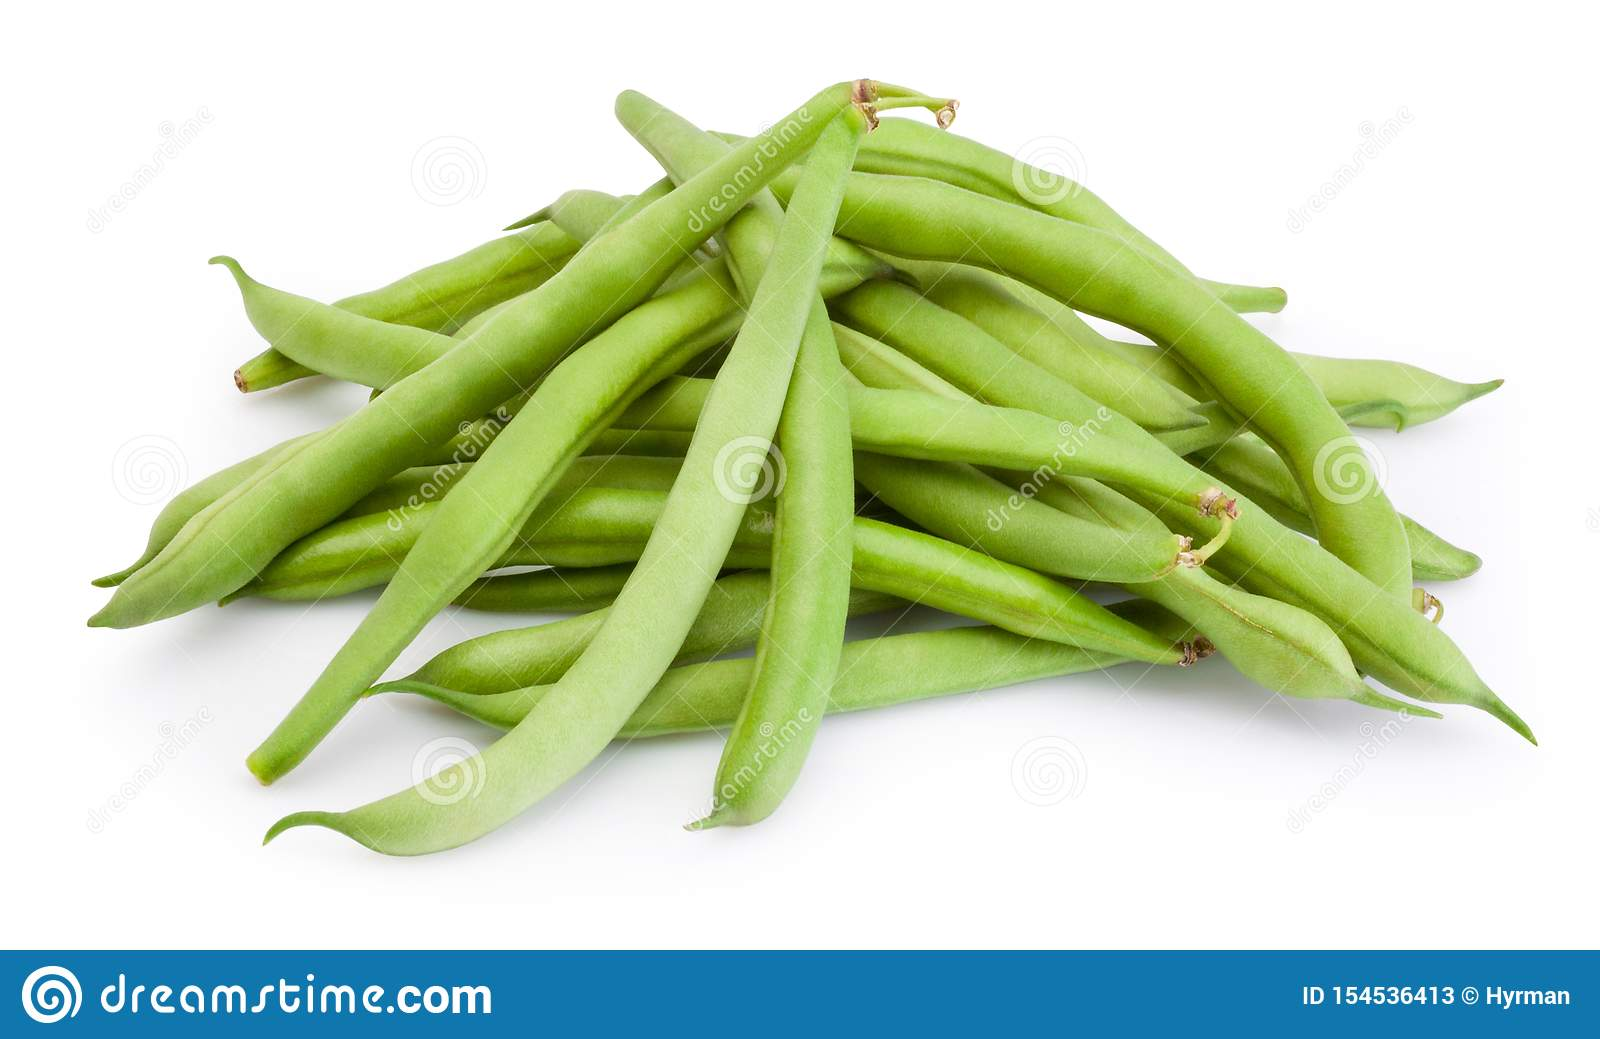 8,8 Beans Green Photos   Free & Royalty Free Stock Photos from ...